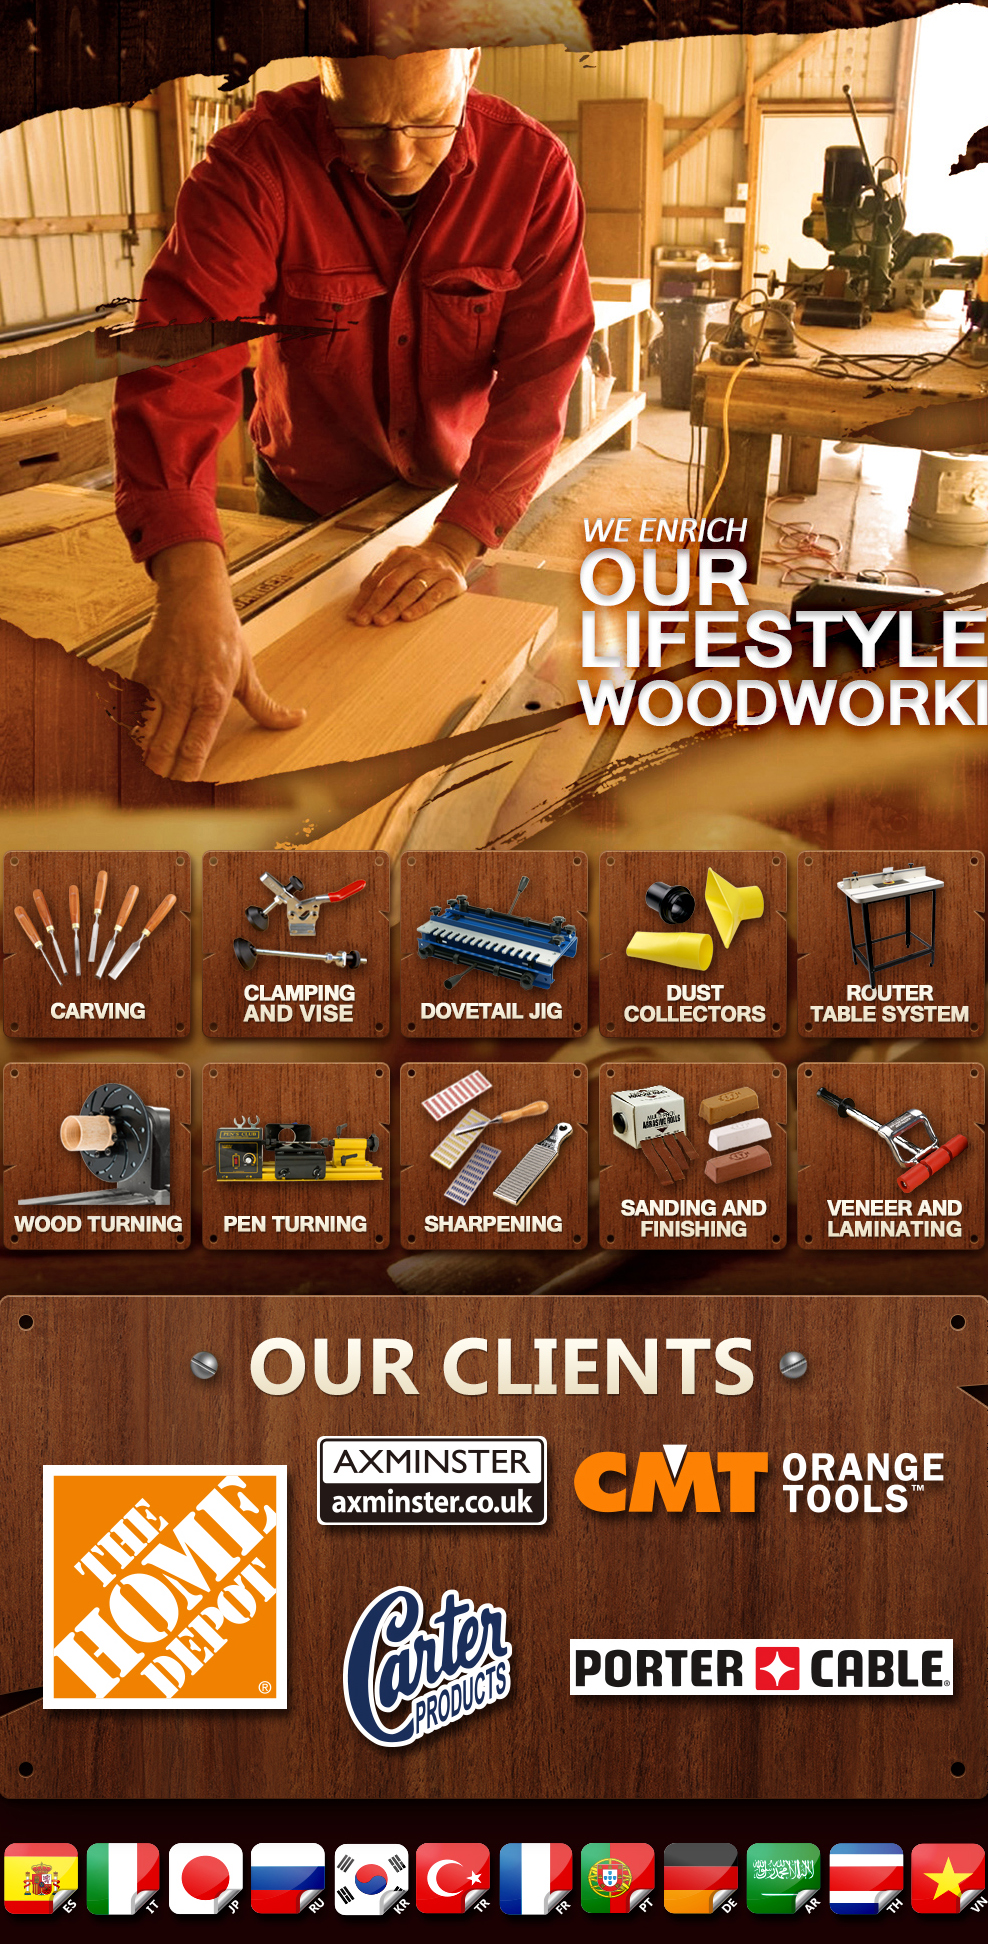 FORTUNE EXTENDABLES CORP. - Woodworking tools,woodworking accessories